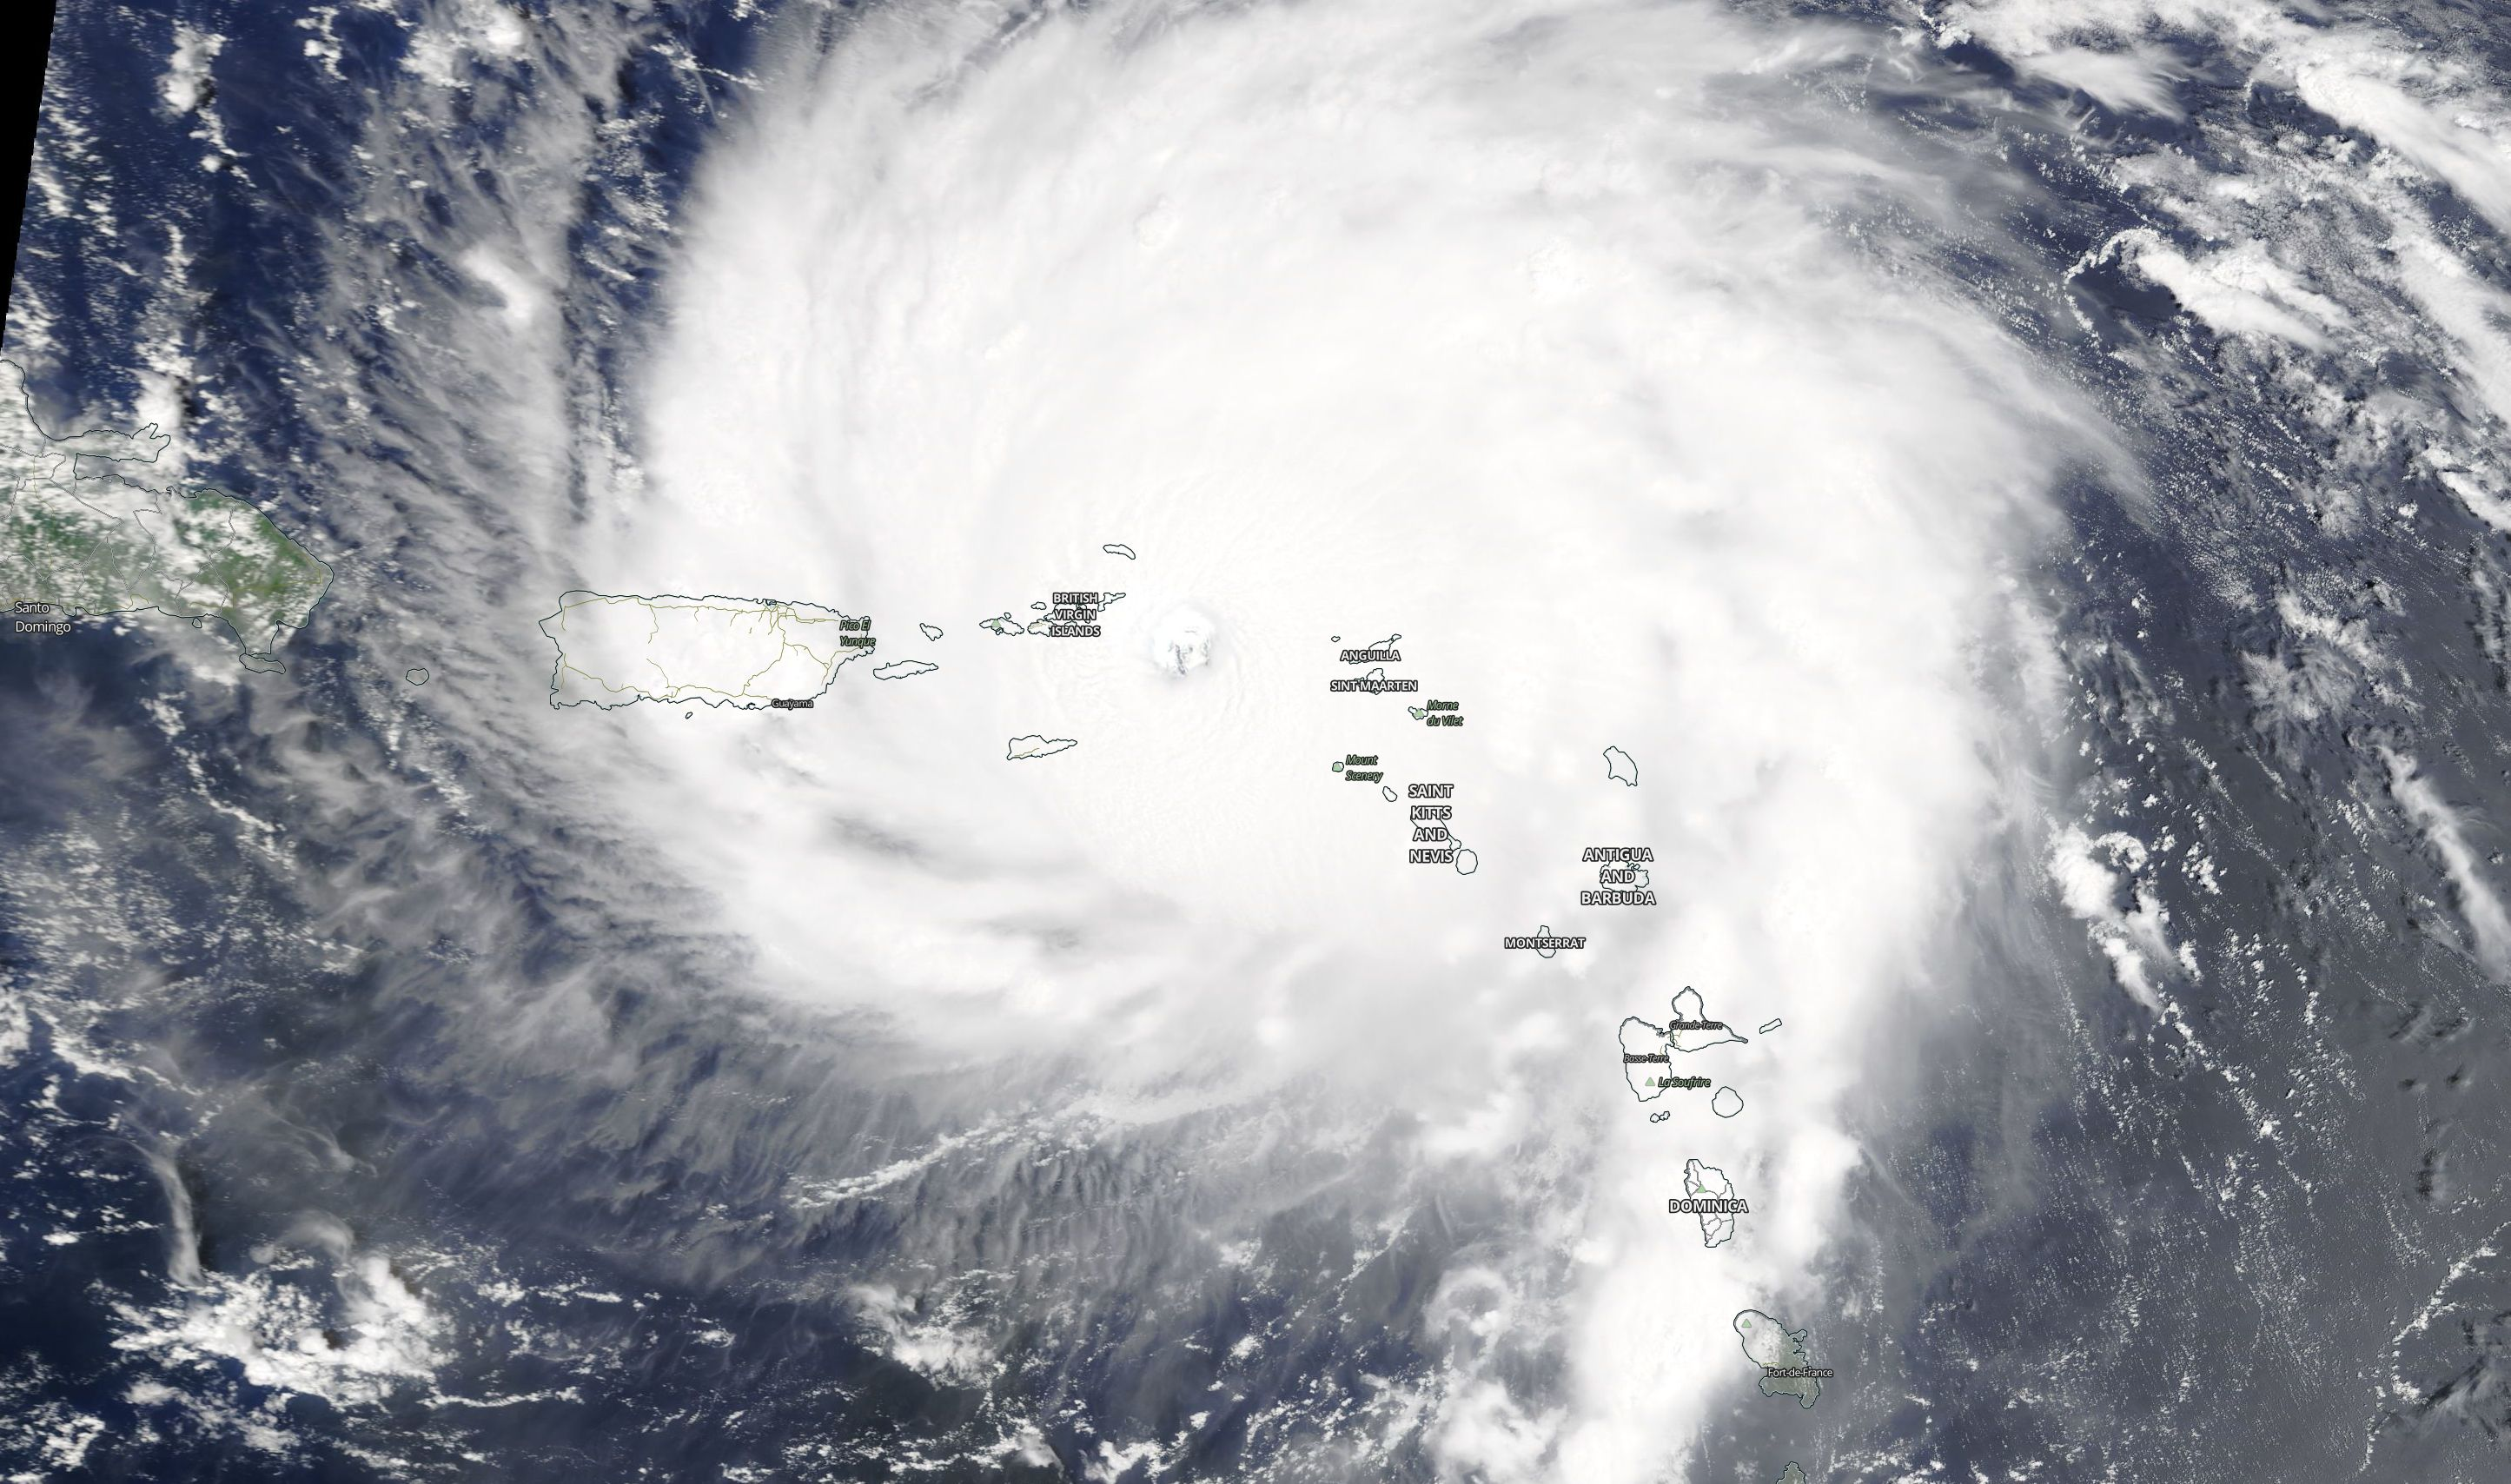 Hurricane Irma as seen on Sept. 6, 2017 (Photo: NASA/MODIS Satellite Image)